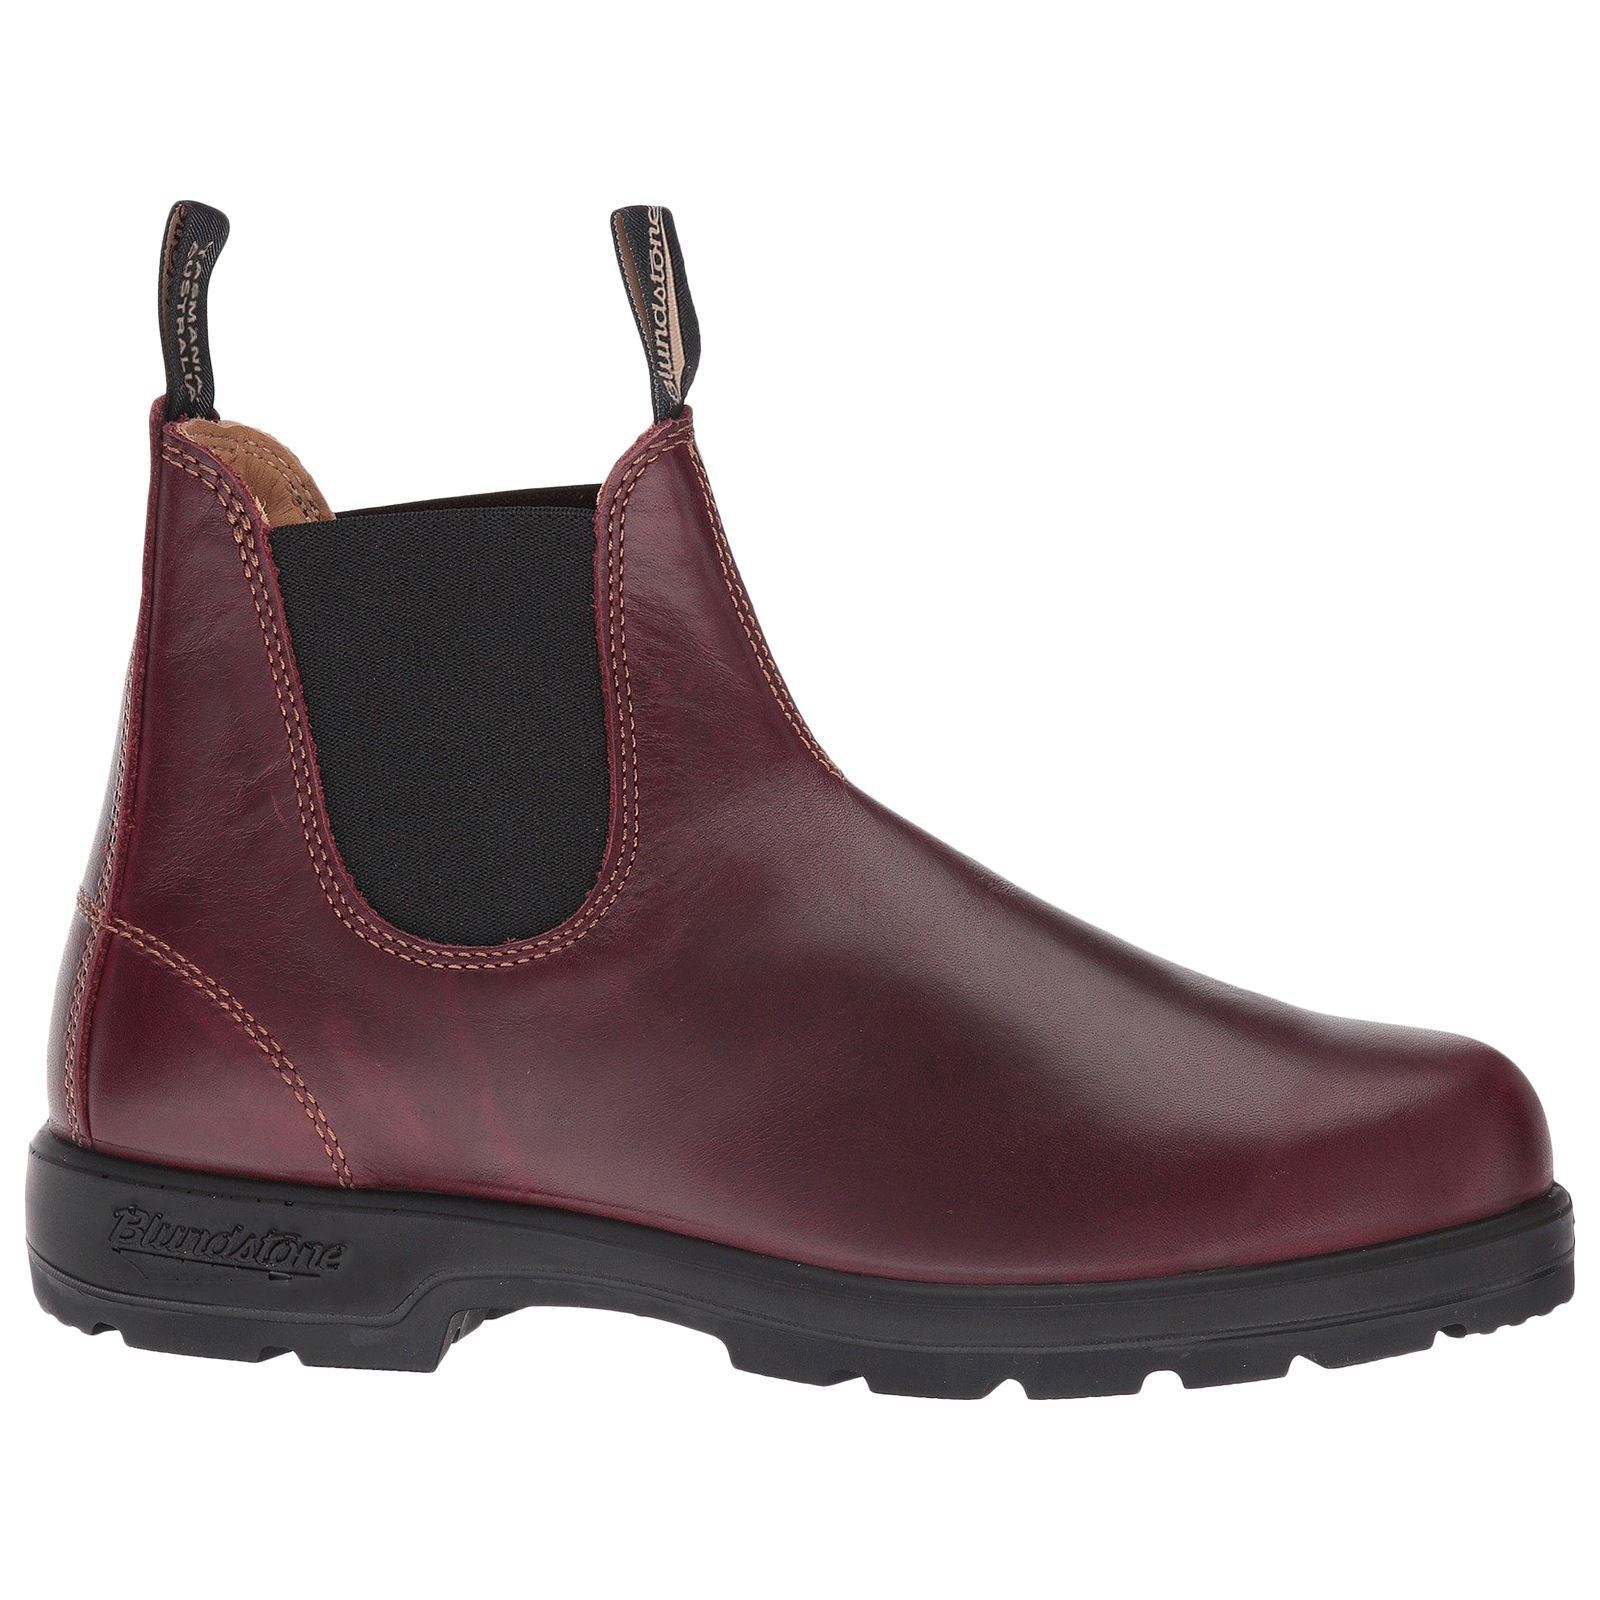 Blundstone 1440 Redwood Mens Leather Slip-on Classic Chelsea Ankle Boots